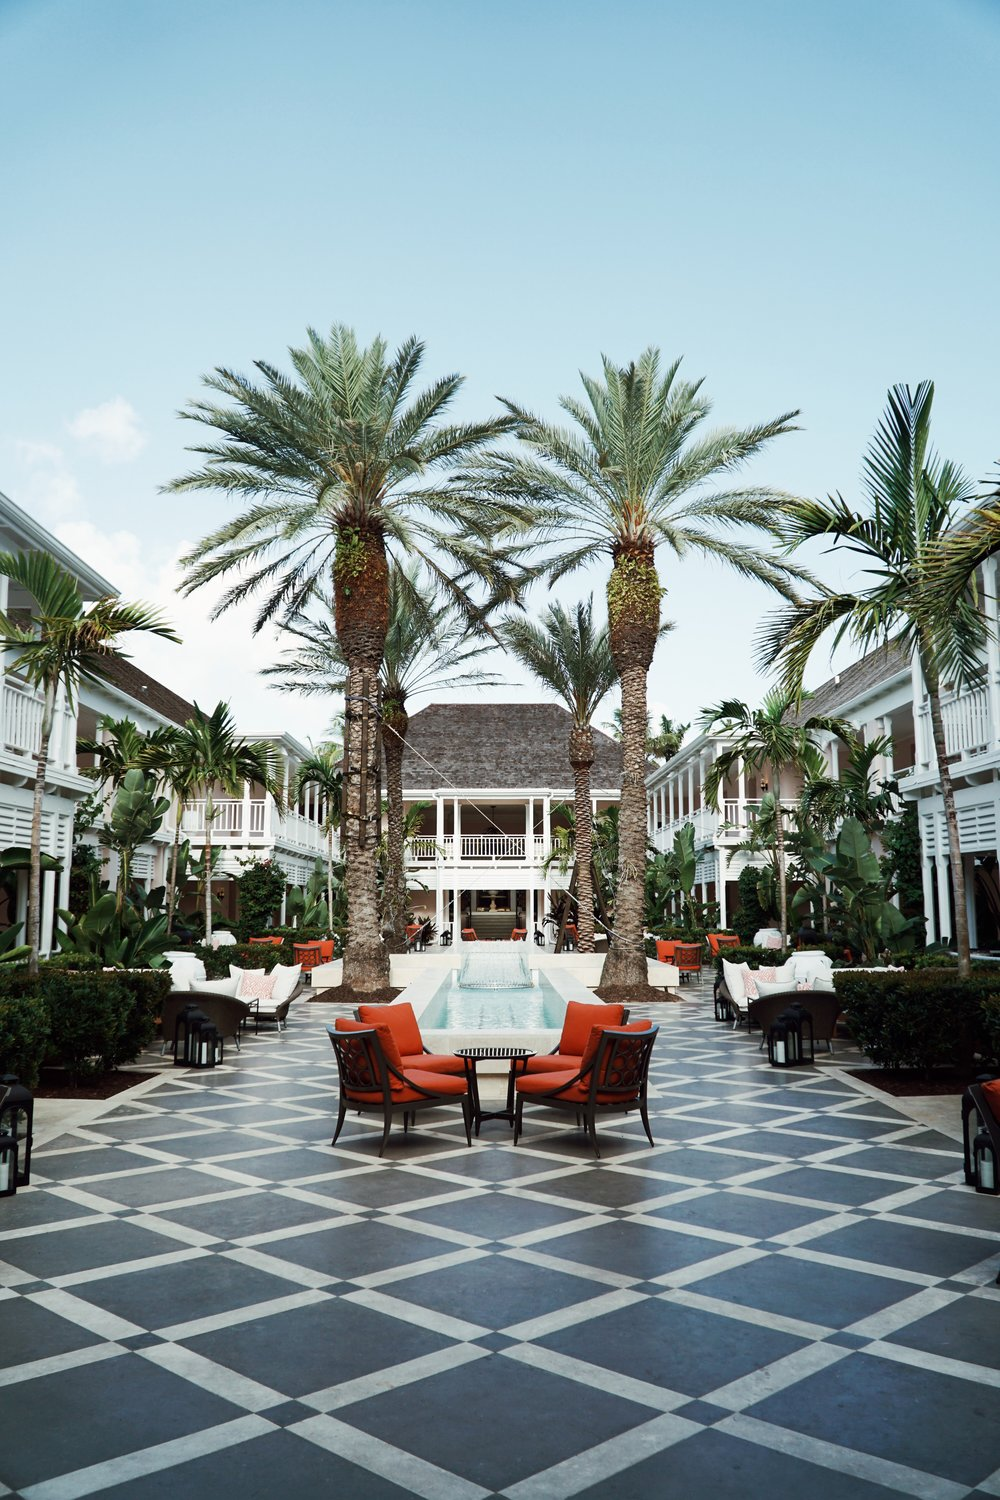 Courtyard at the One&Only Ocean Club taken by Julia Friedman